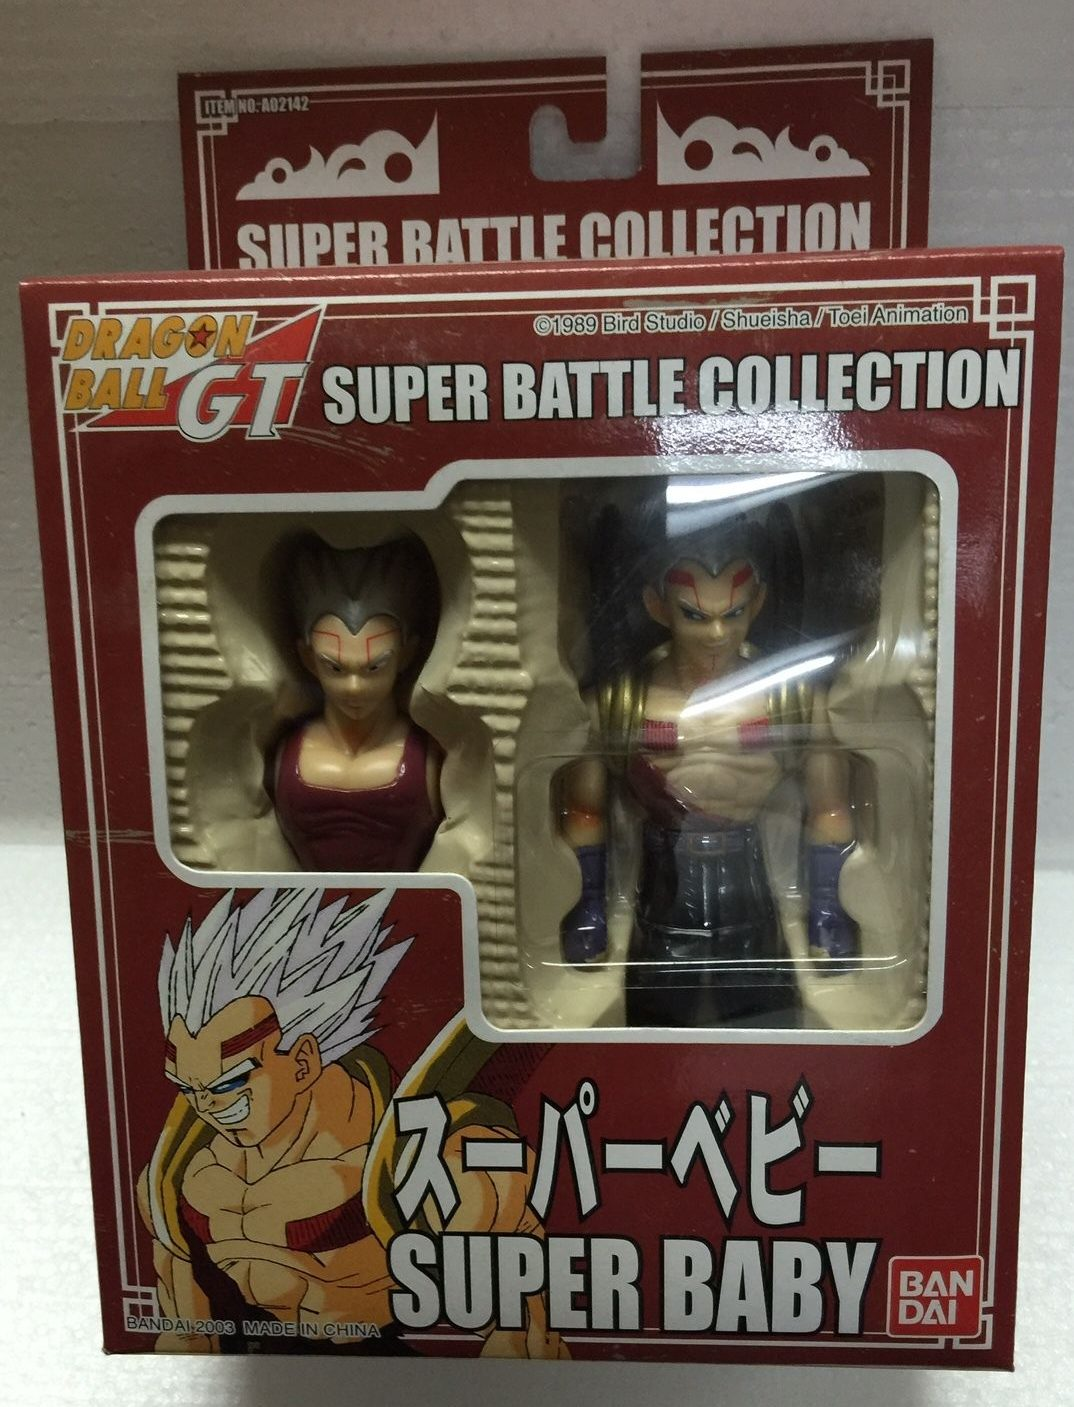 Super Battle Collection – Super Baby (2003 Version)